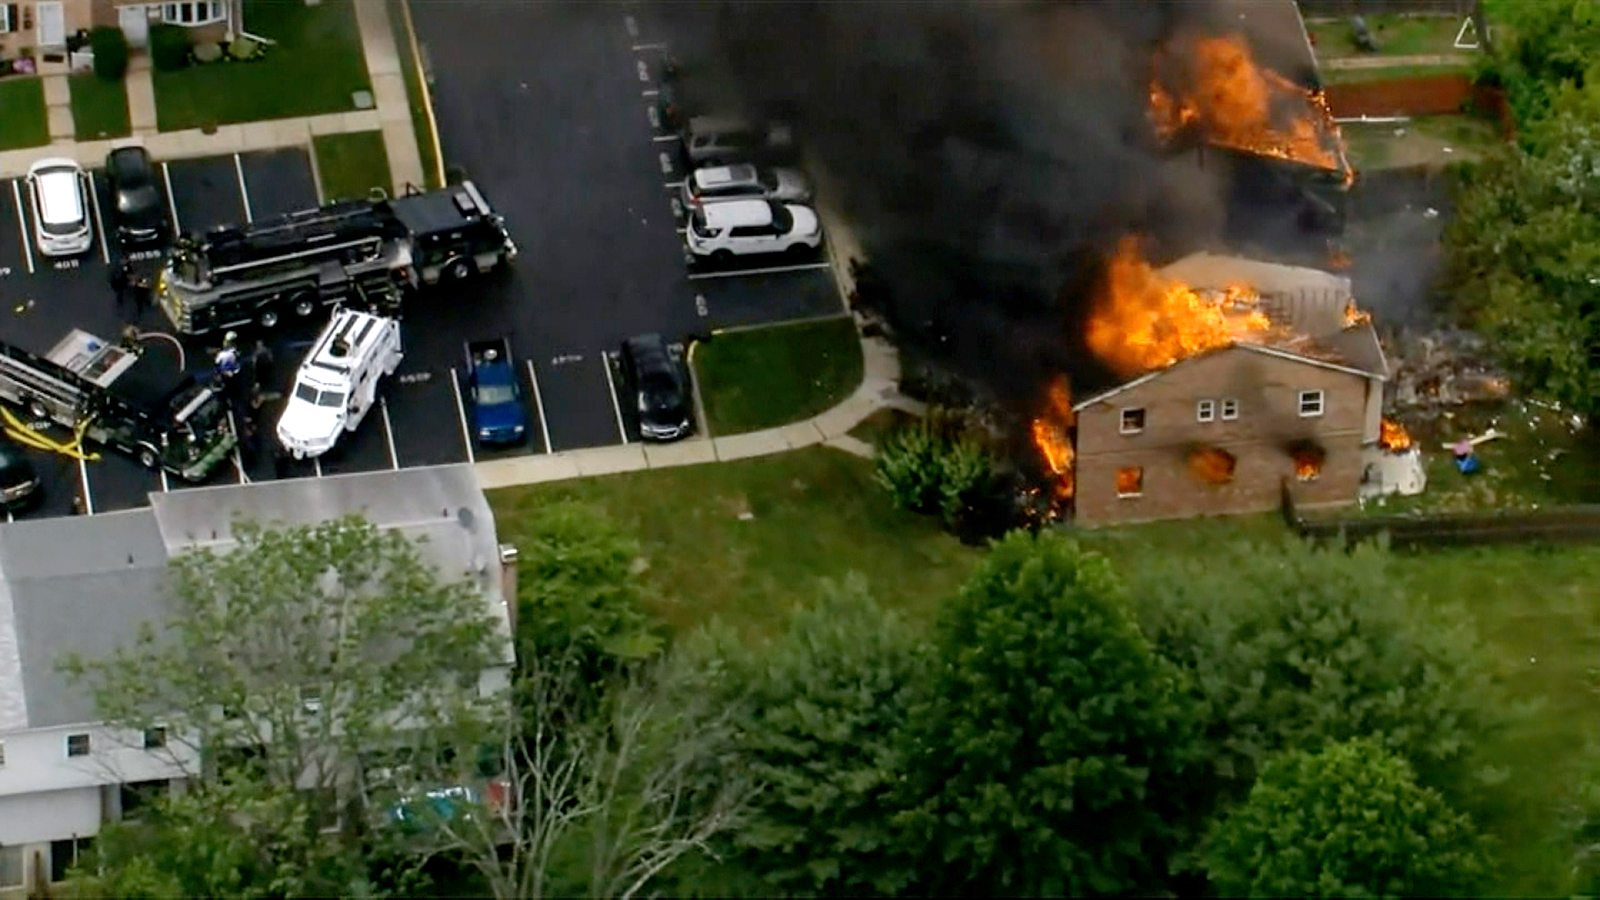 Several Philadelphia-area homes were severely damaged after an explosion inside of a residence, police say